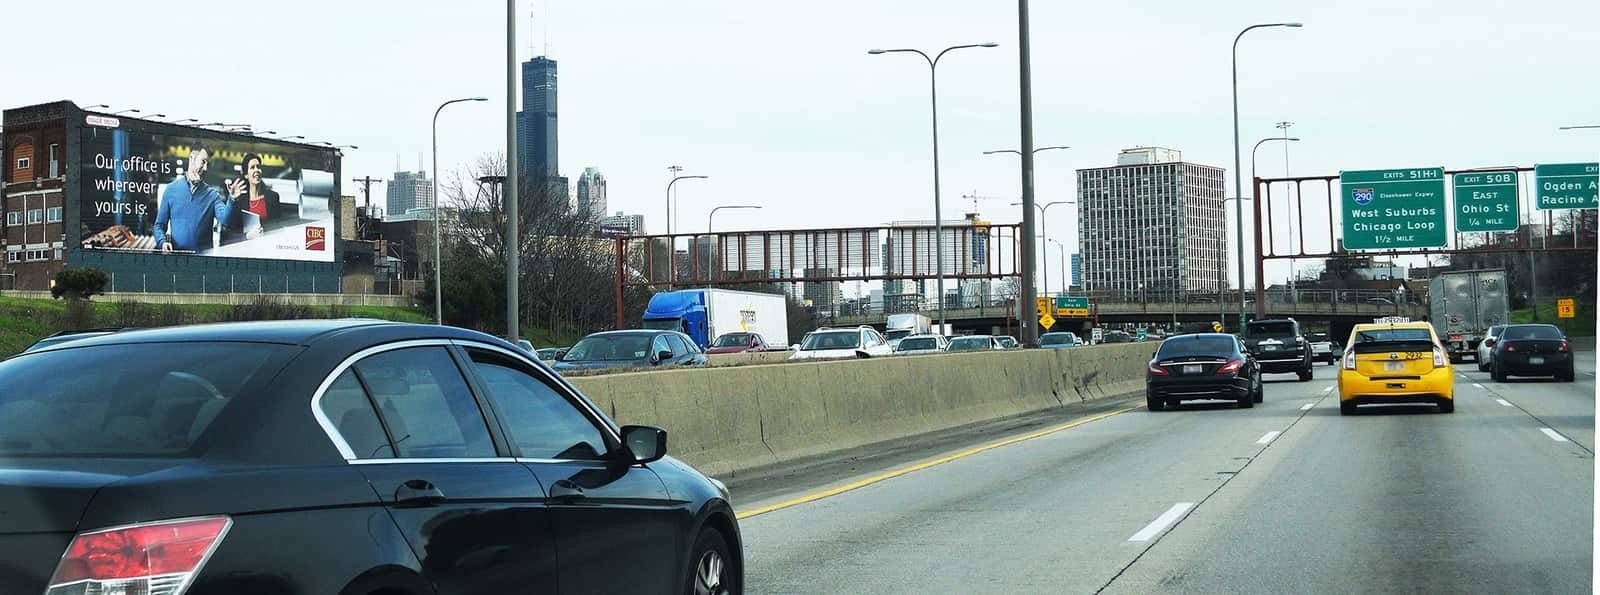 Wallscape Advertising on Kennedy Expressway - IMW882 Image Media Outdoor